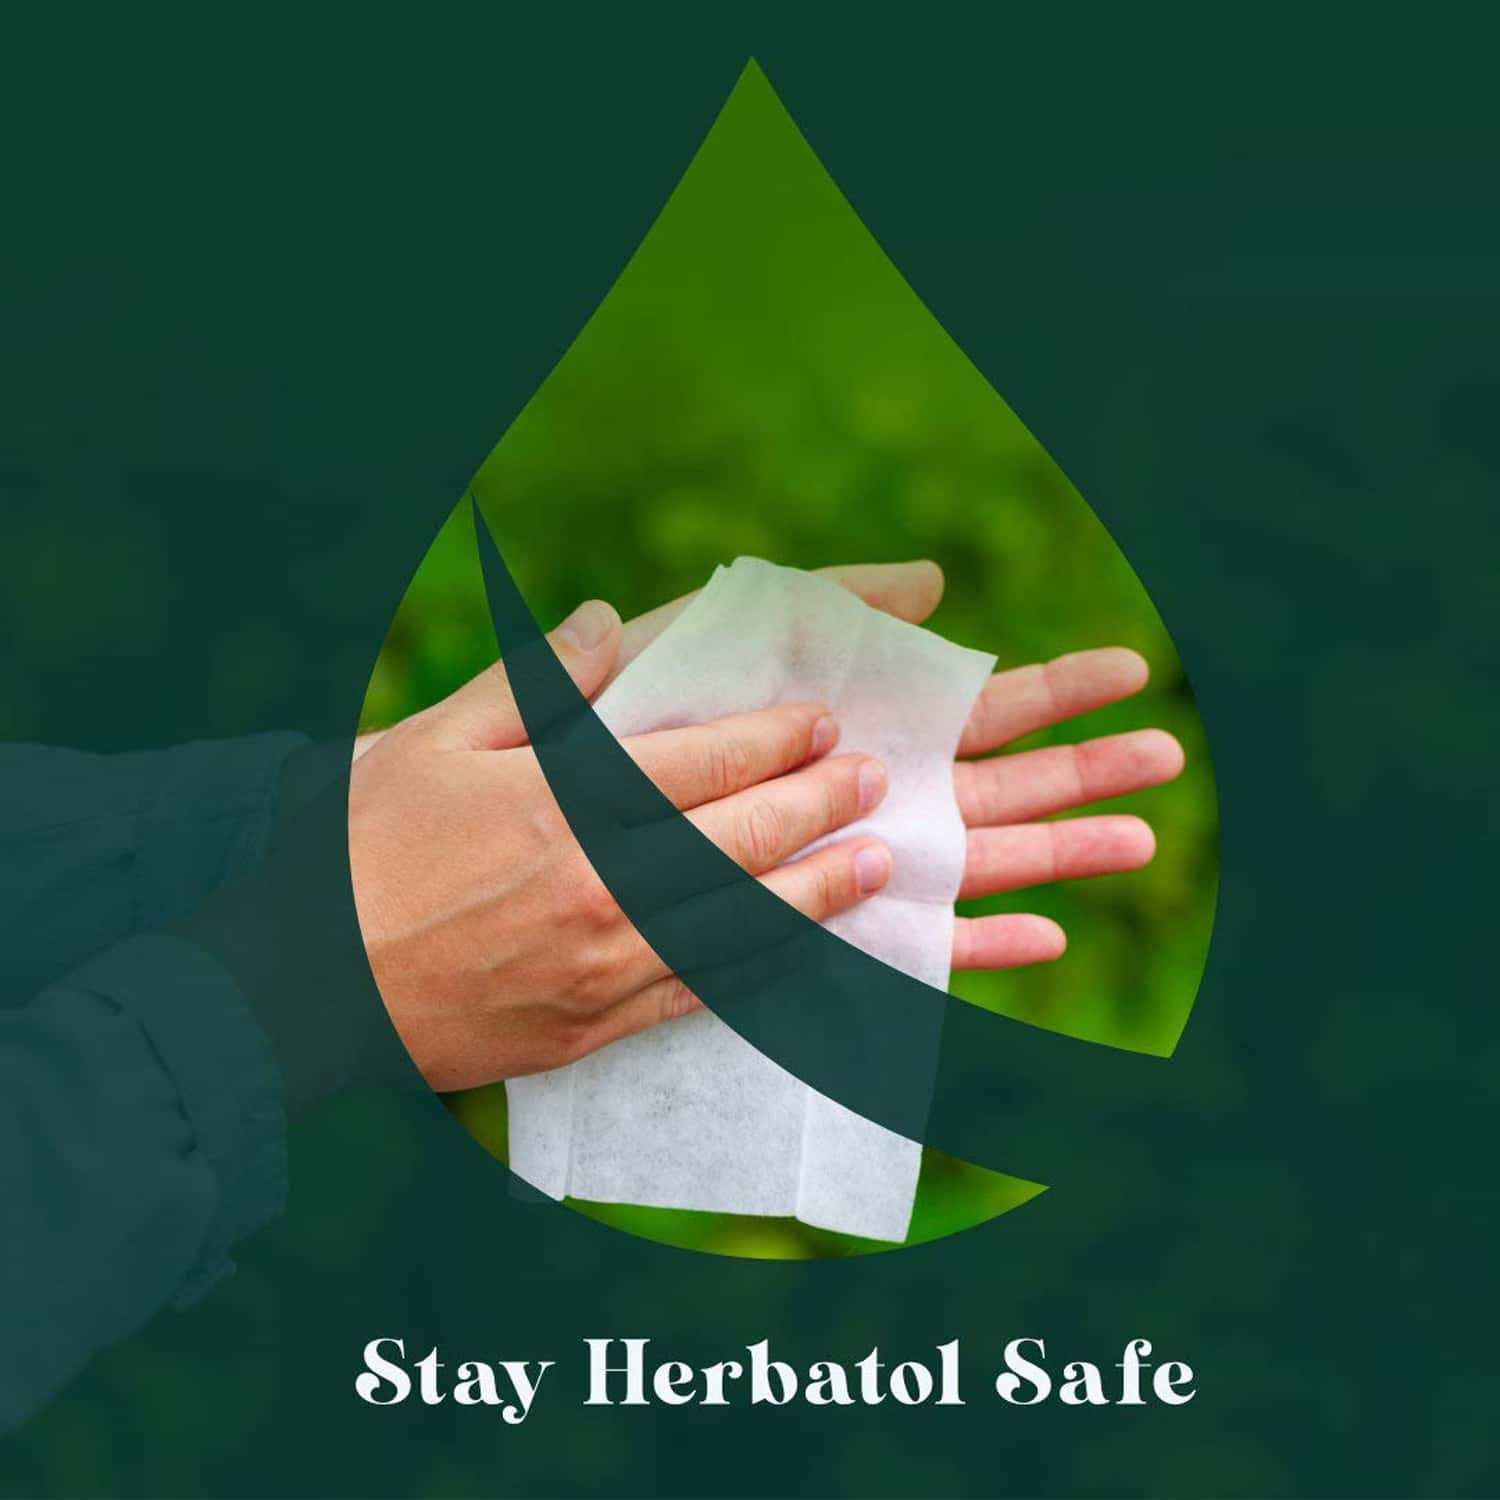 Herbatol Plus Germ Protection Wipes - 100% Biodegradable | Safe On Skin - Aloe Vera Extracts - 25 Wipes (pack Of 2)